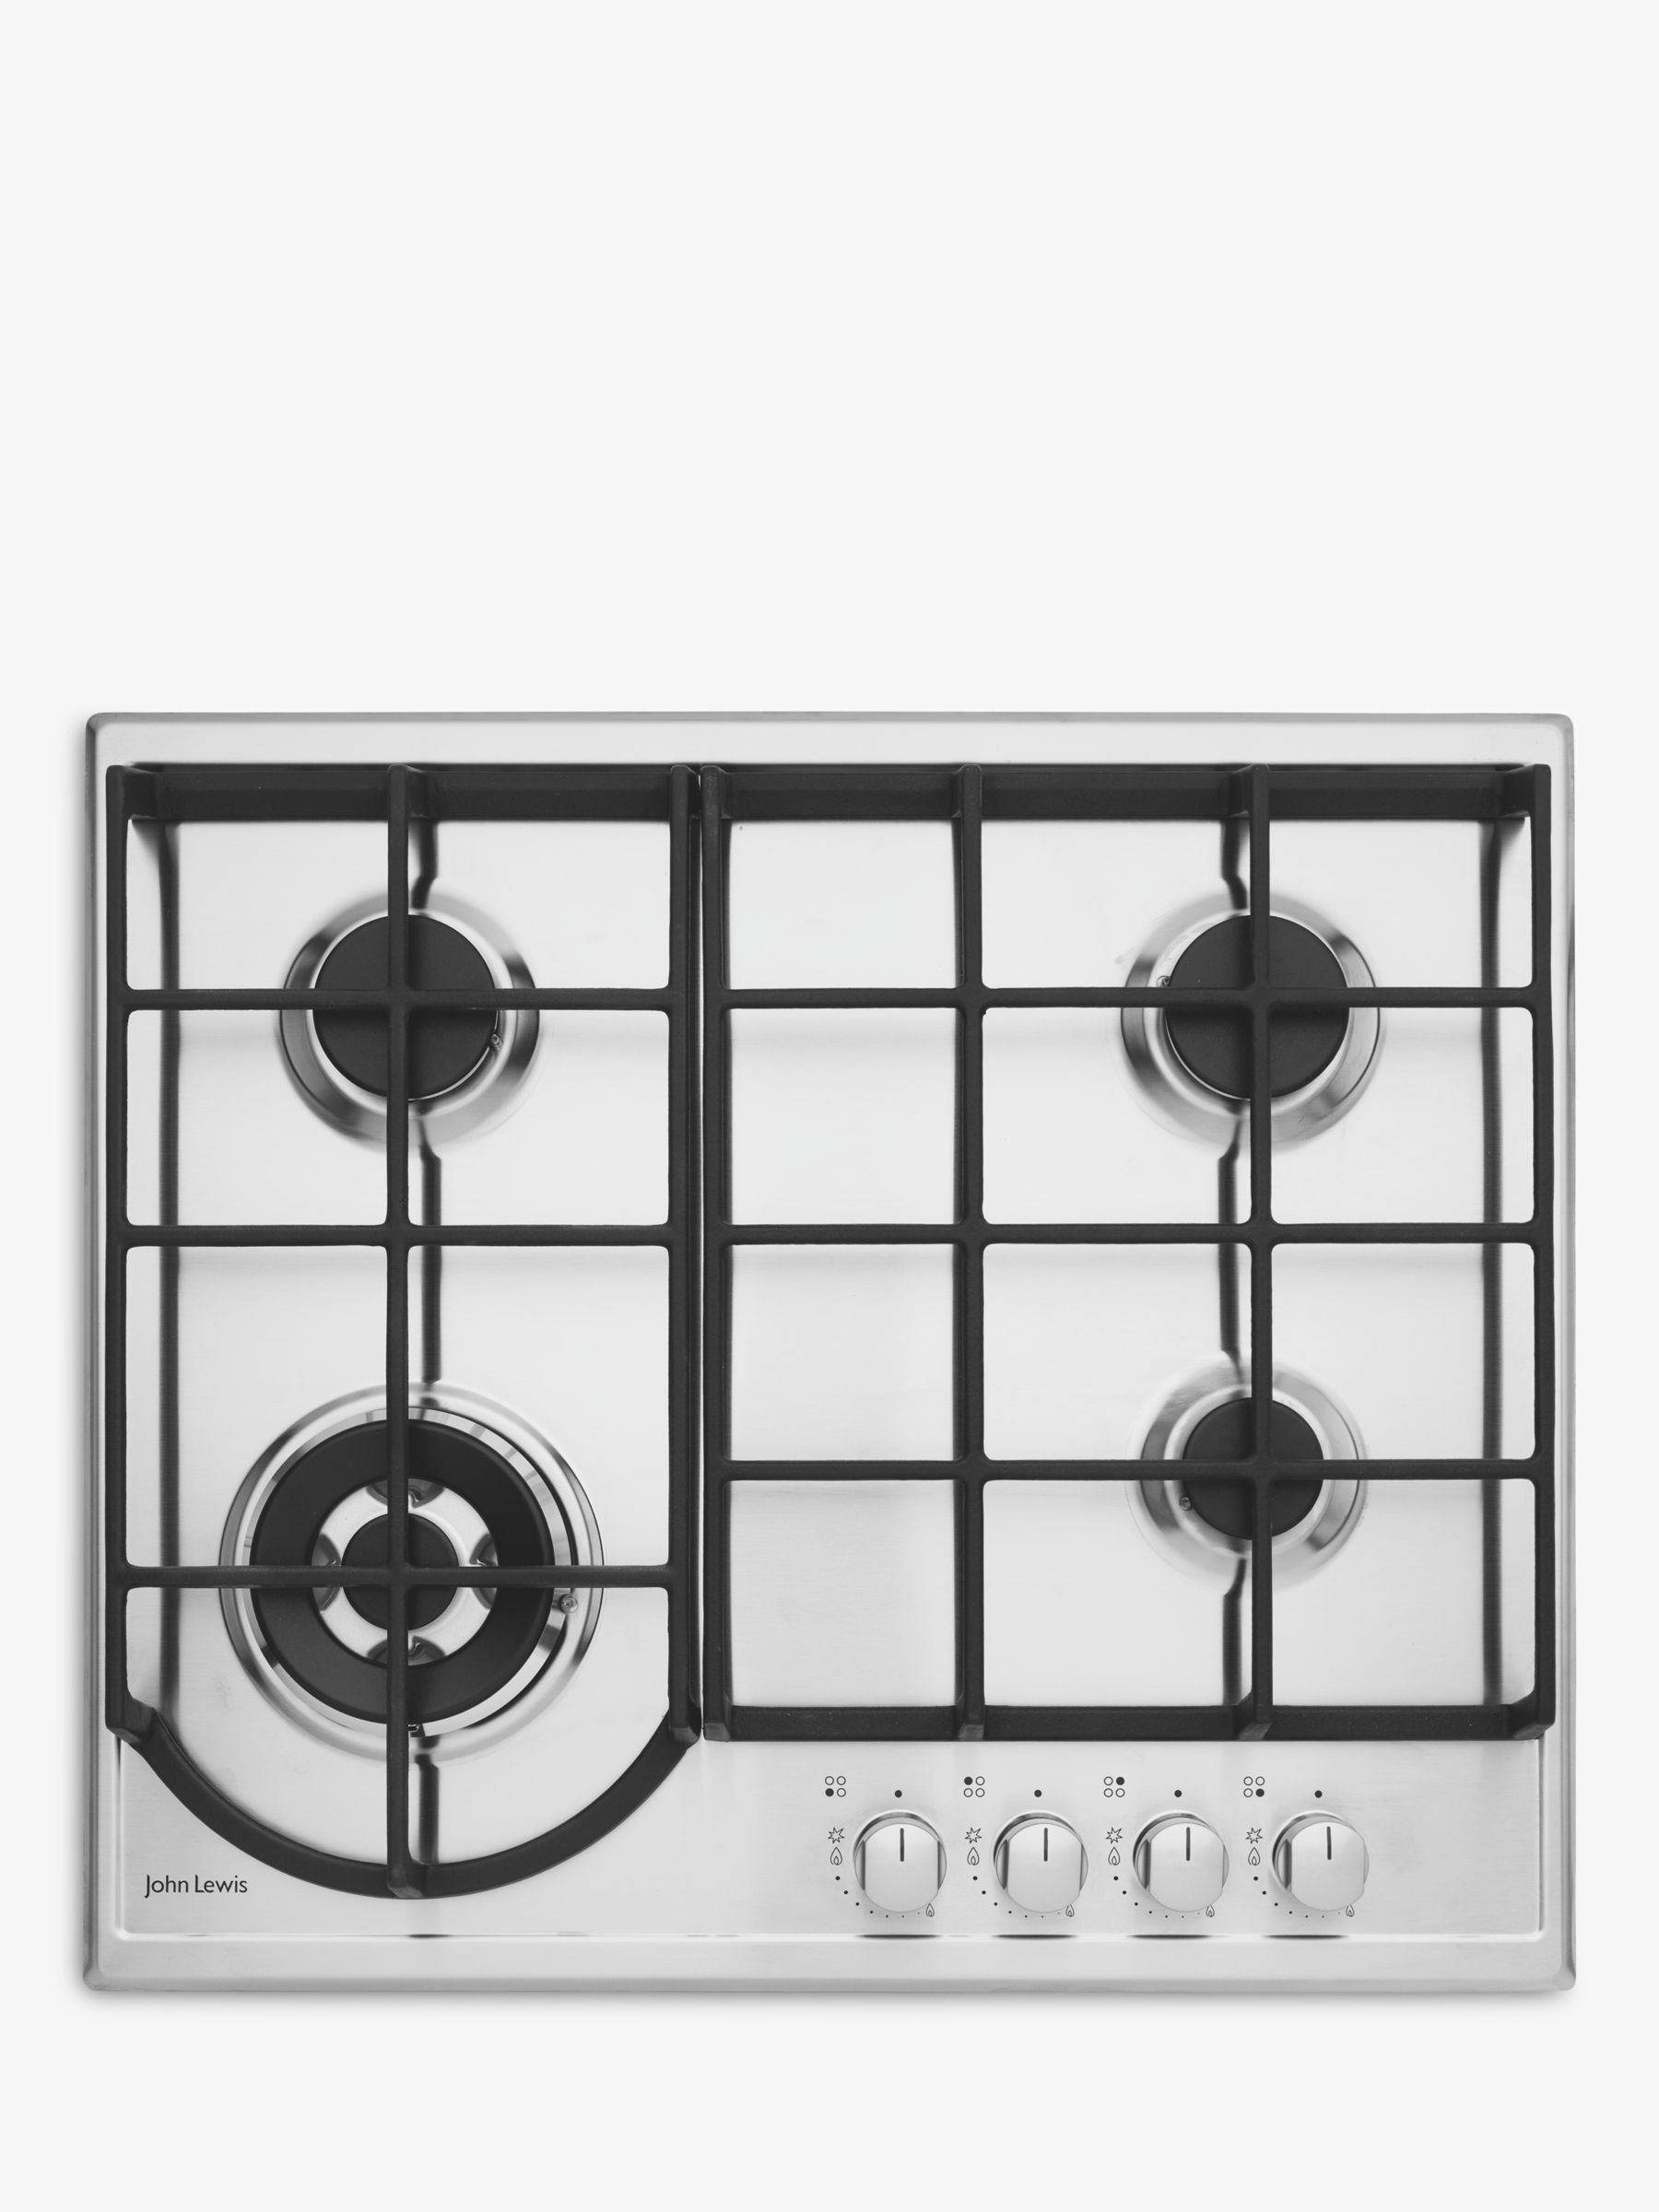 John Lewis  JLBIGGH703 Gas Hob Pan Support